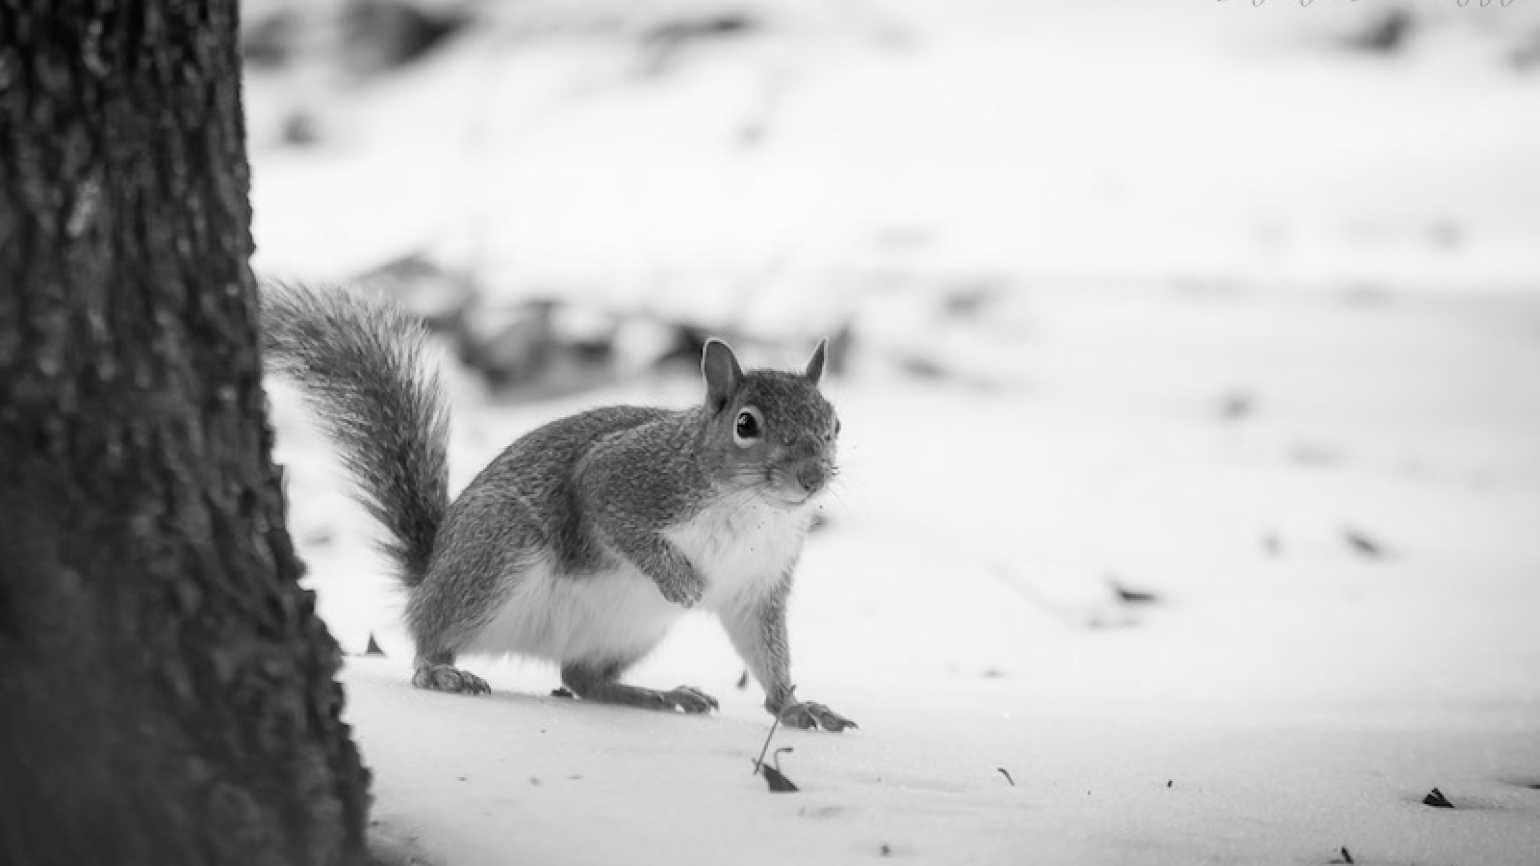 A squirrel in the snow. Photo by Judy Royal Glenn.